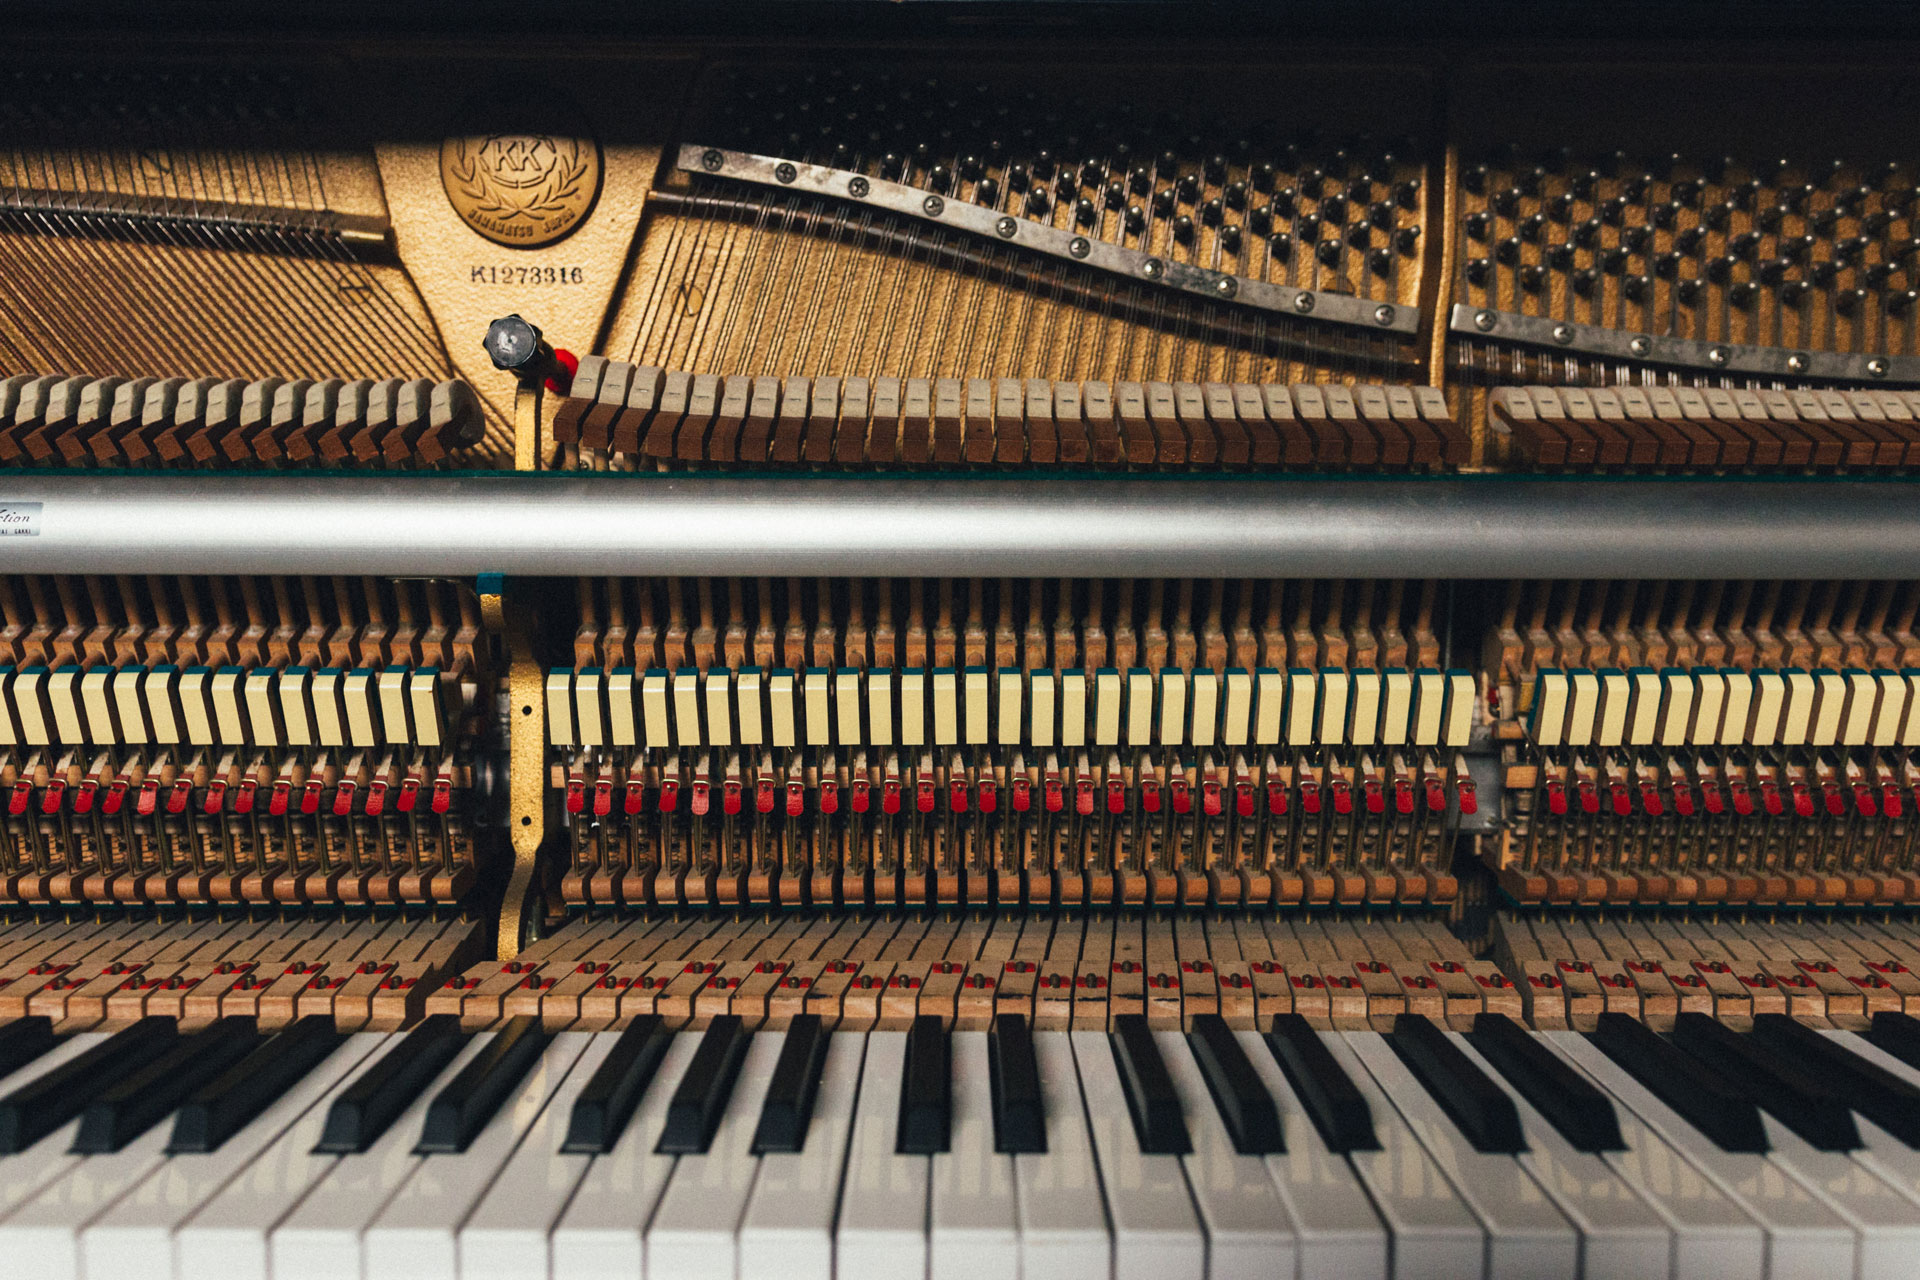 piano-ology-how-the-piano-works-featured-photo-by-markus-gjengaar-on-unsplash